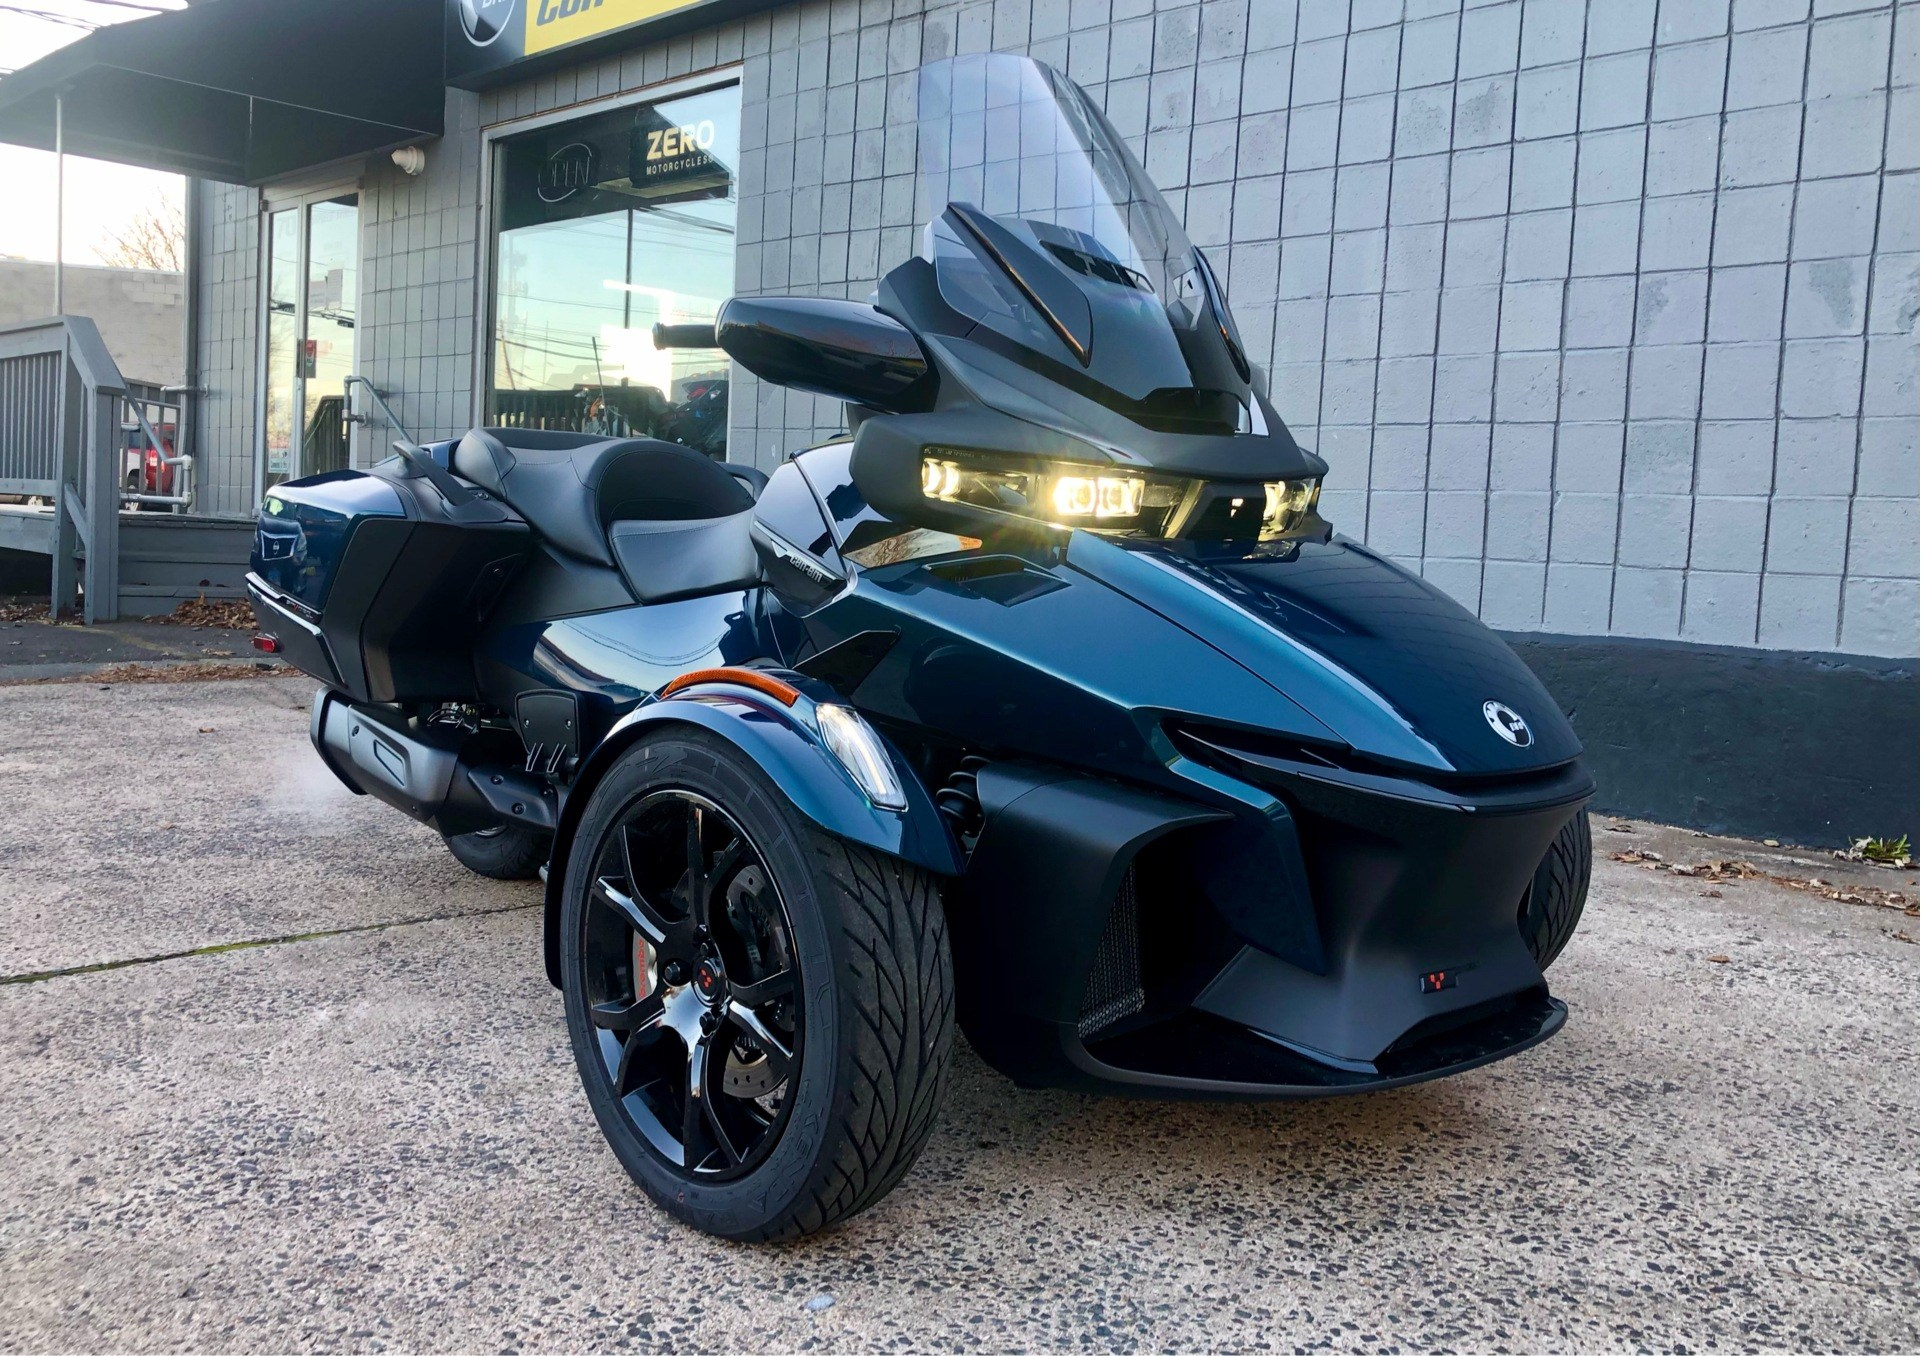 2020 Can-Am Spyder RT in Enfield, Connecticut - Photo 1